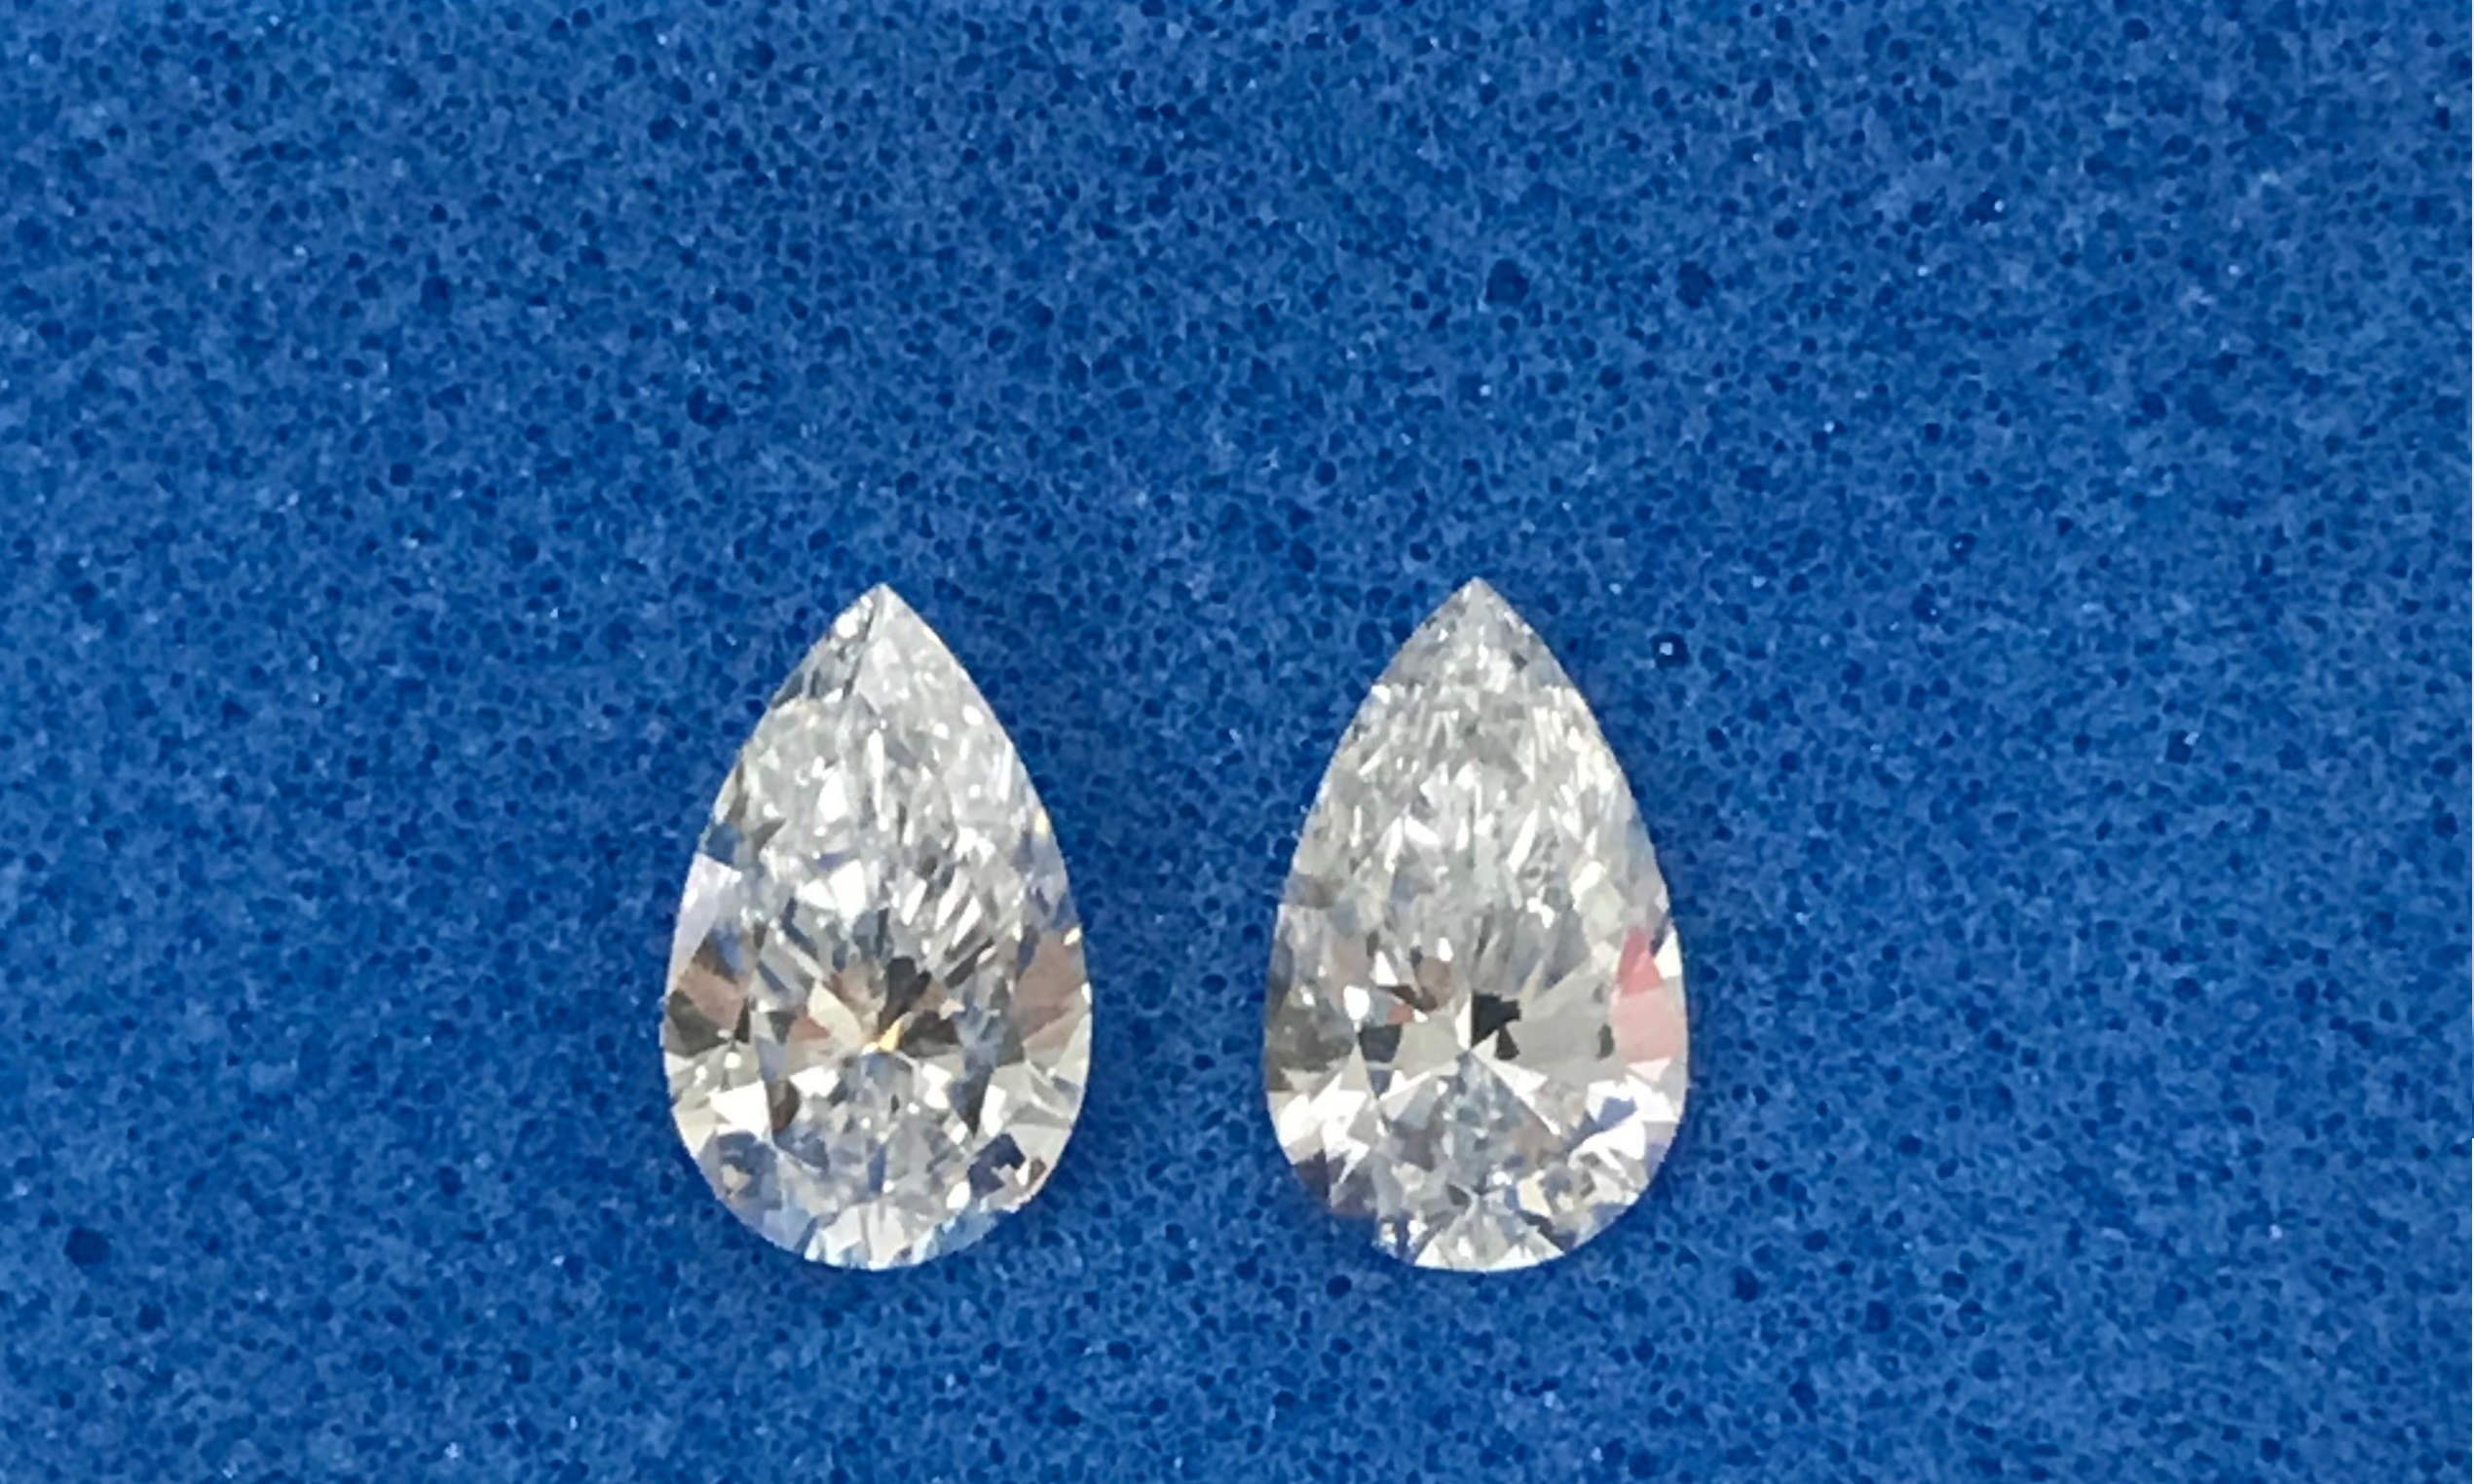 Gumer & Co Jewelry - Diamond Image - .00981